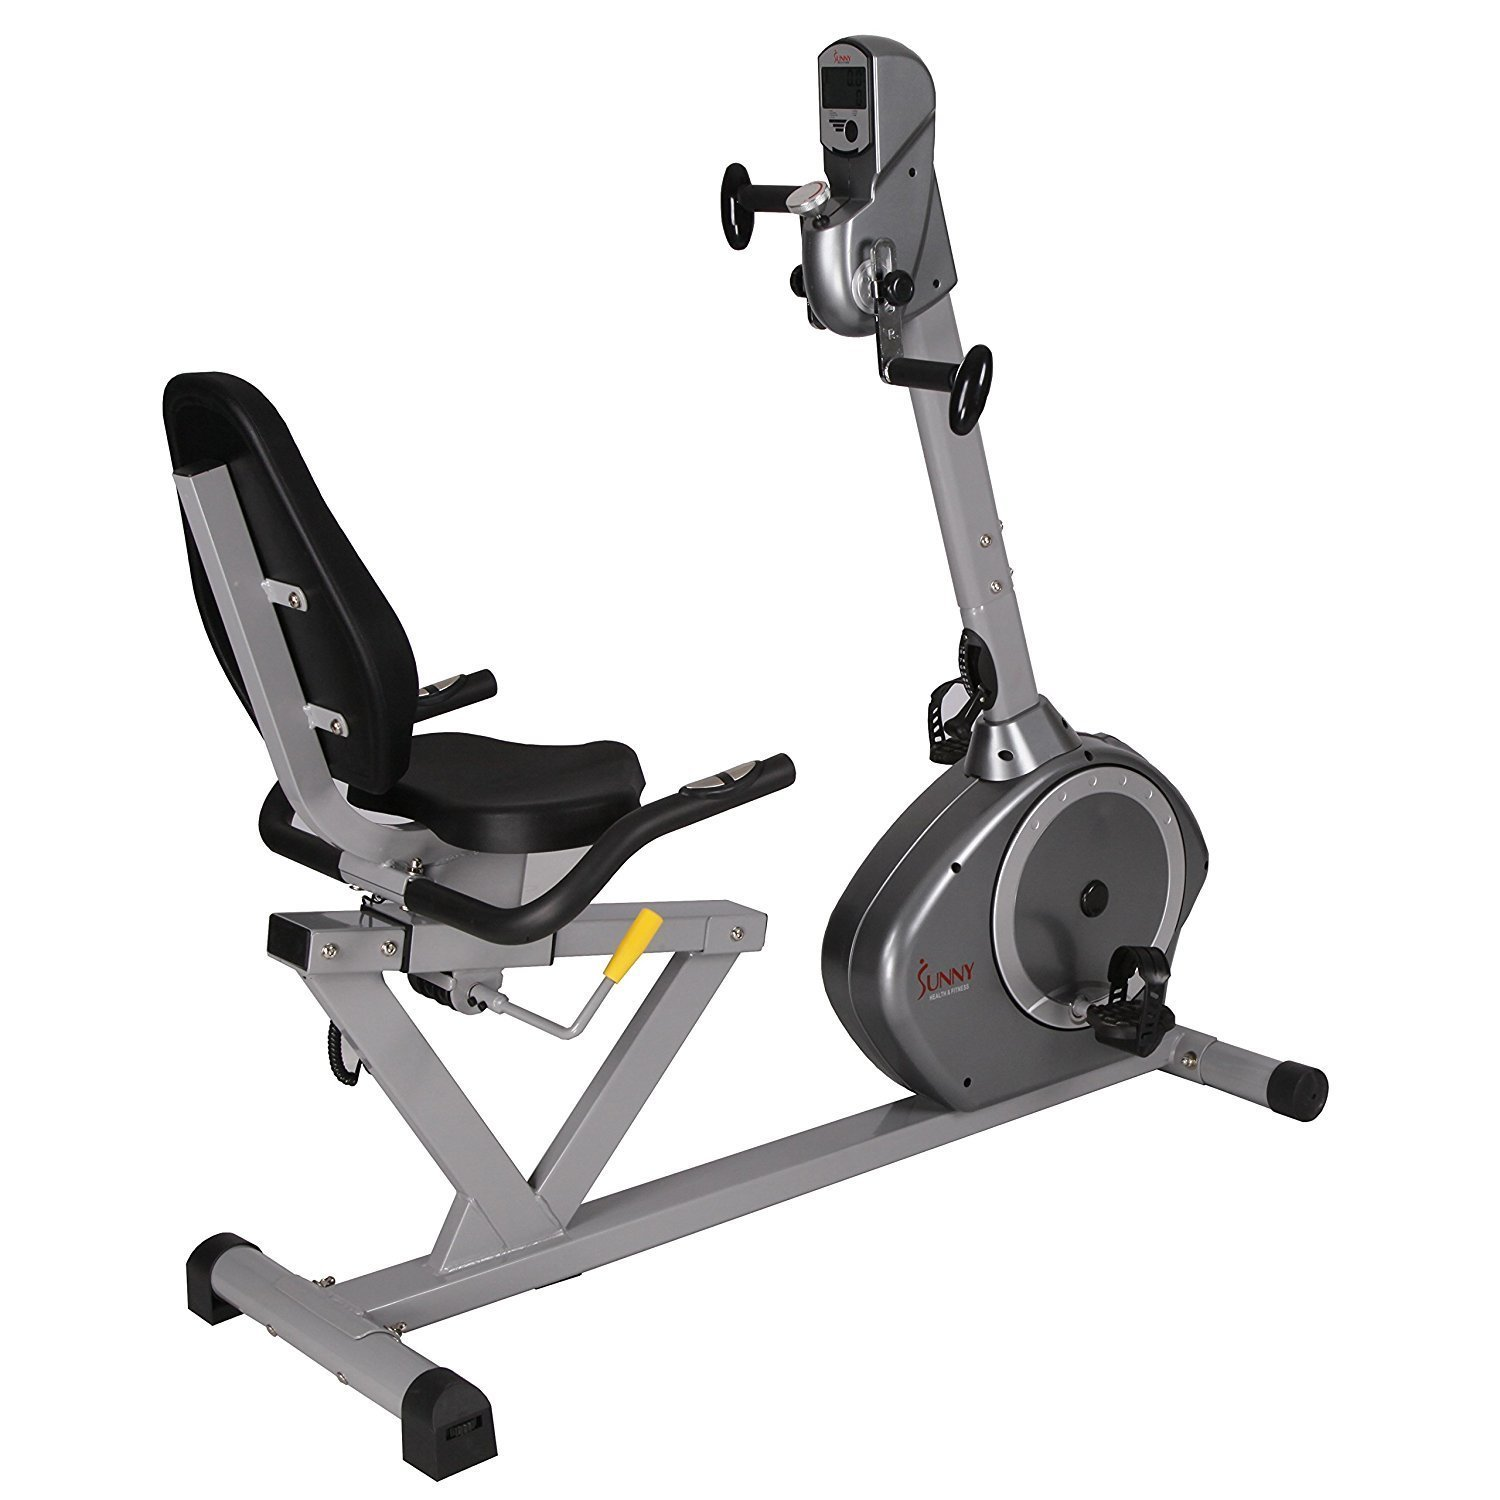 Sunny Health & Fitness Magnetic Recumbent Bike Exercise Bike, 350lb High Weight Capacity, Arm Exercisers, Monitor, Pulse Rate Monitoring - SF-RB4631 by Sunny Health & Fitness (Image #1)